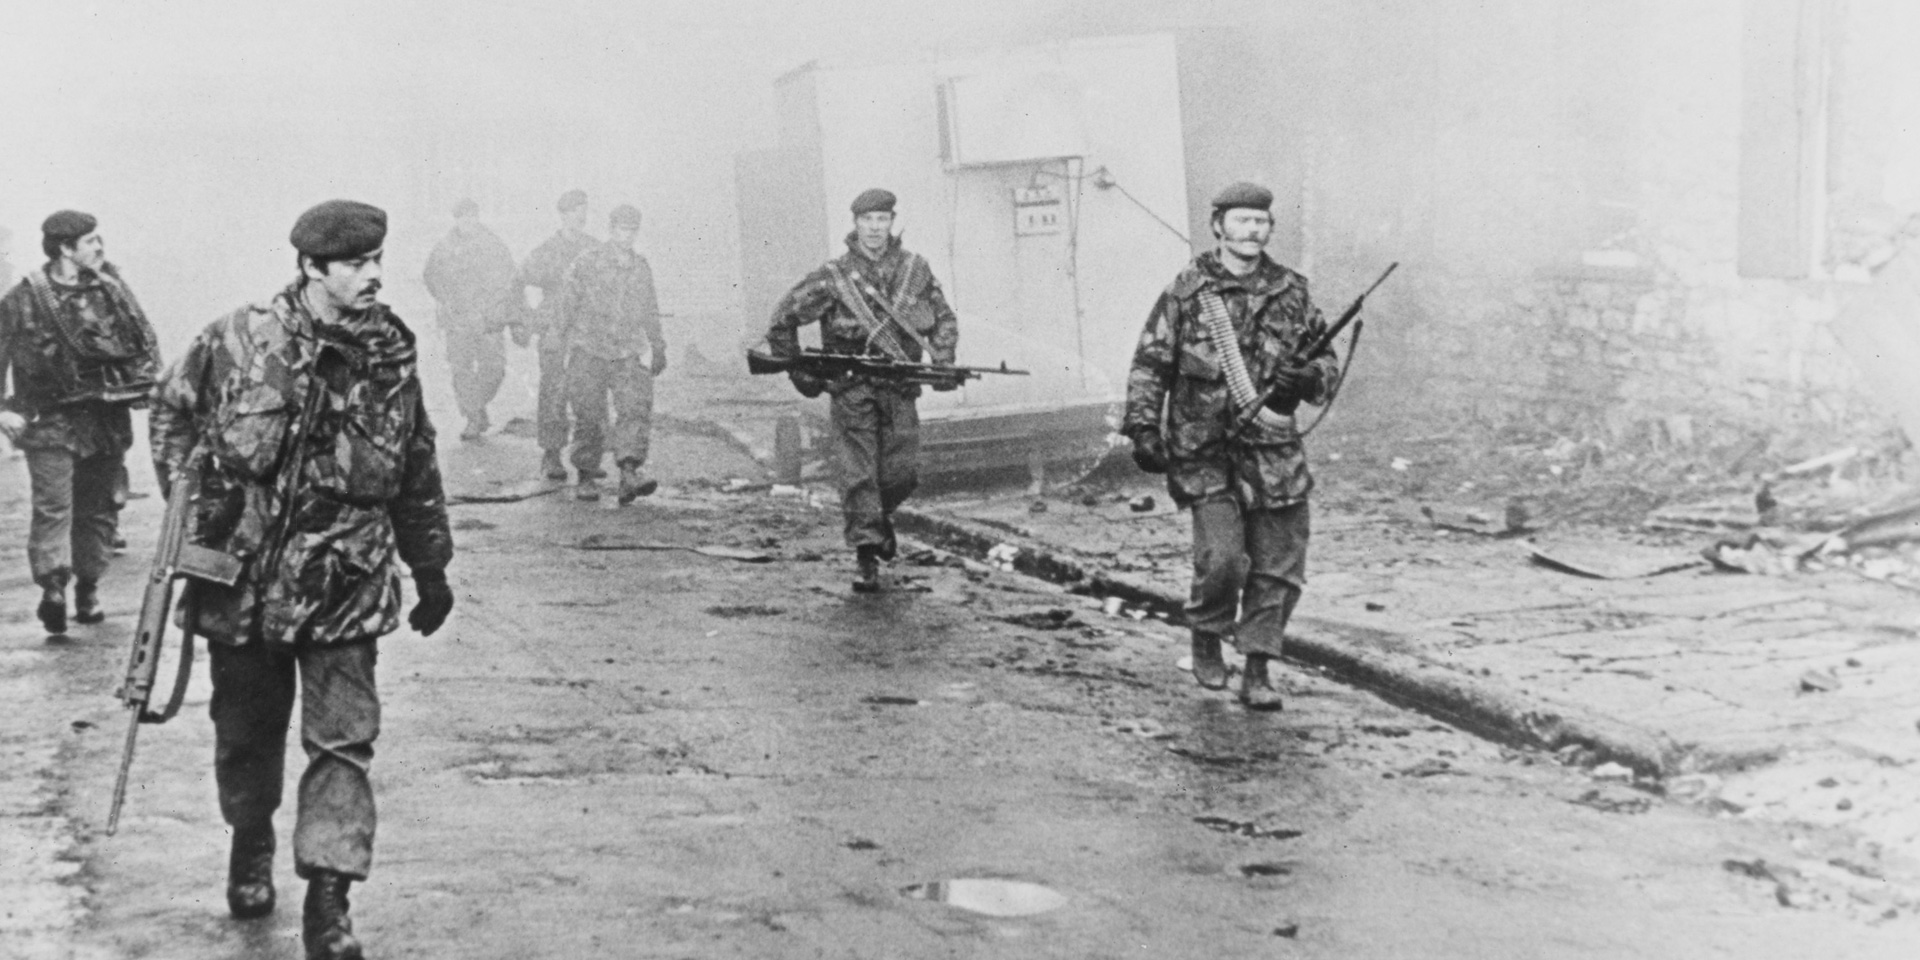 A view of a group of paras on foot patrol down a ruined street on the Falklands, 1982